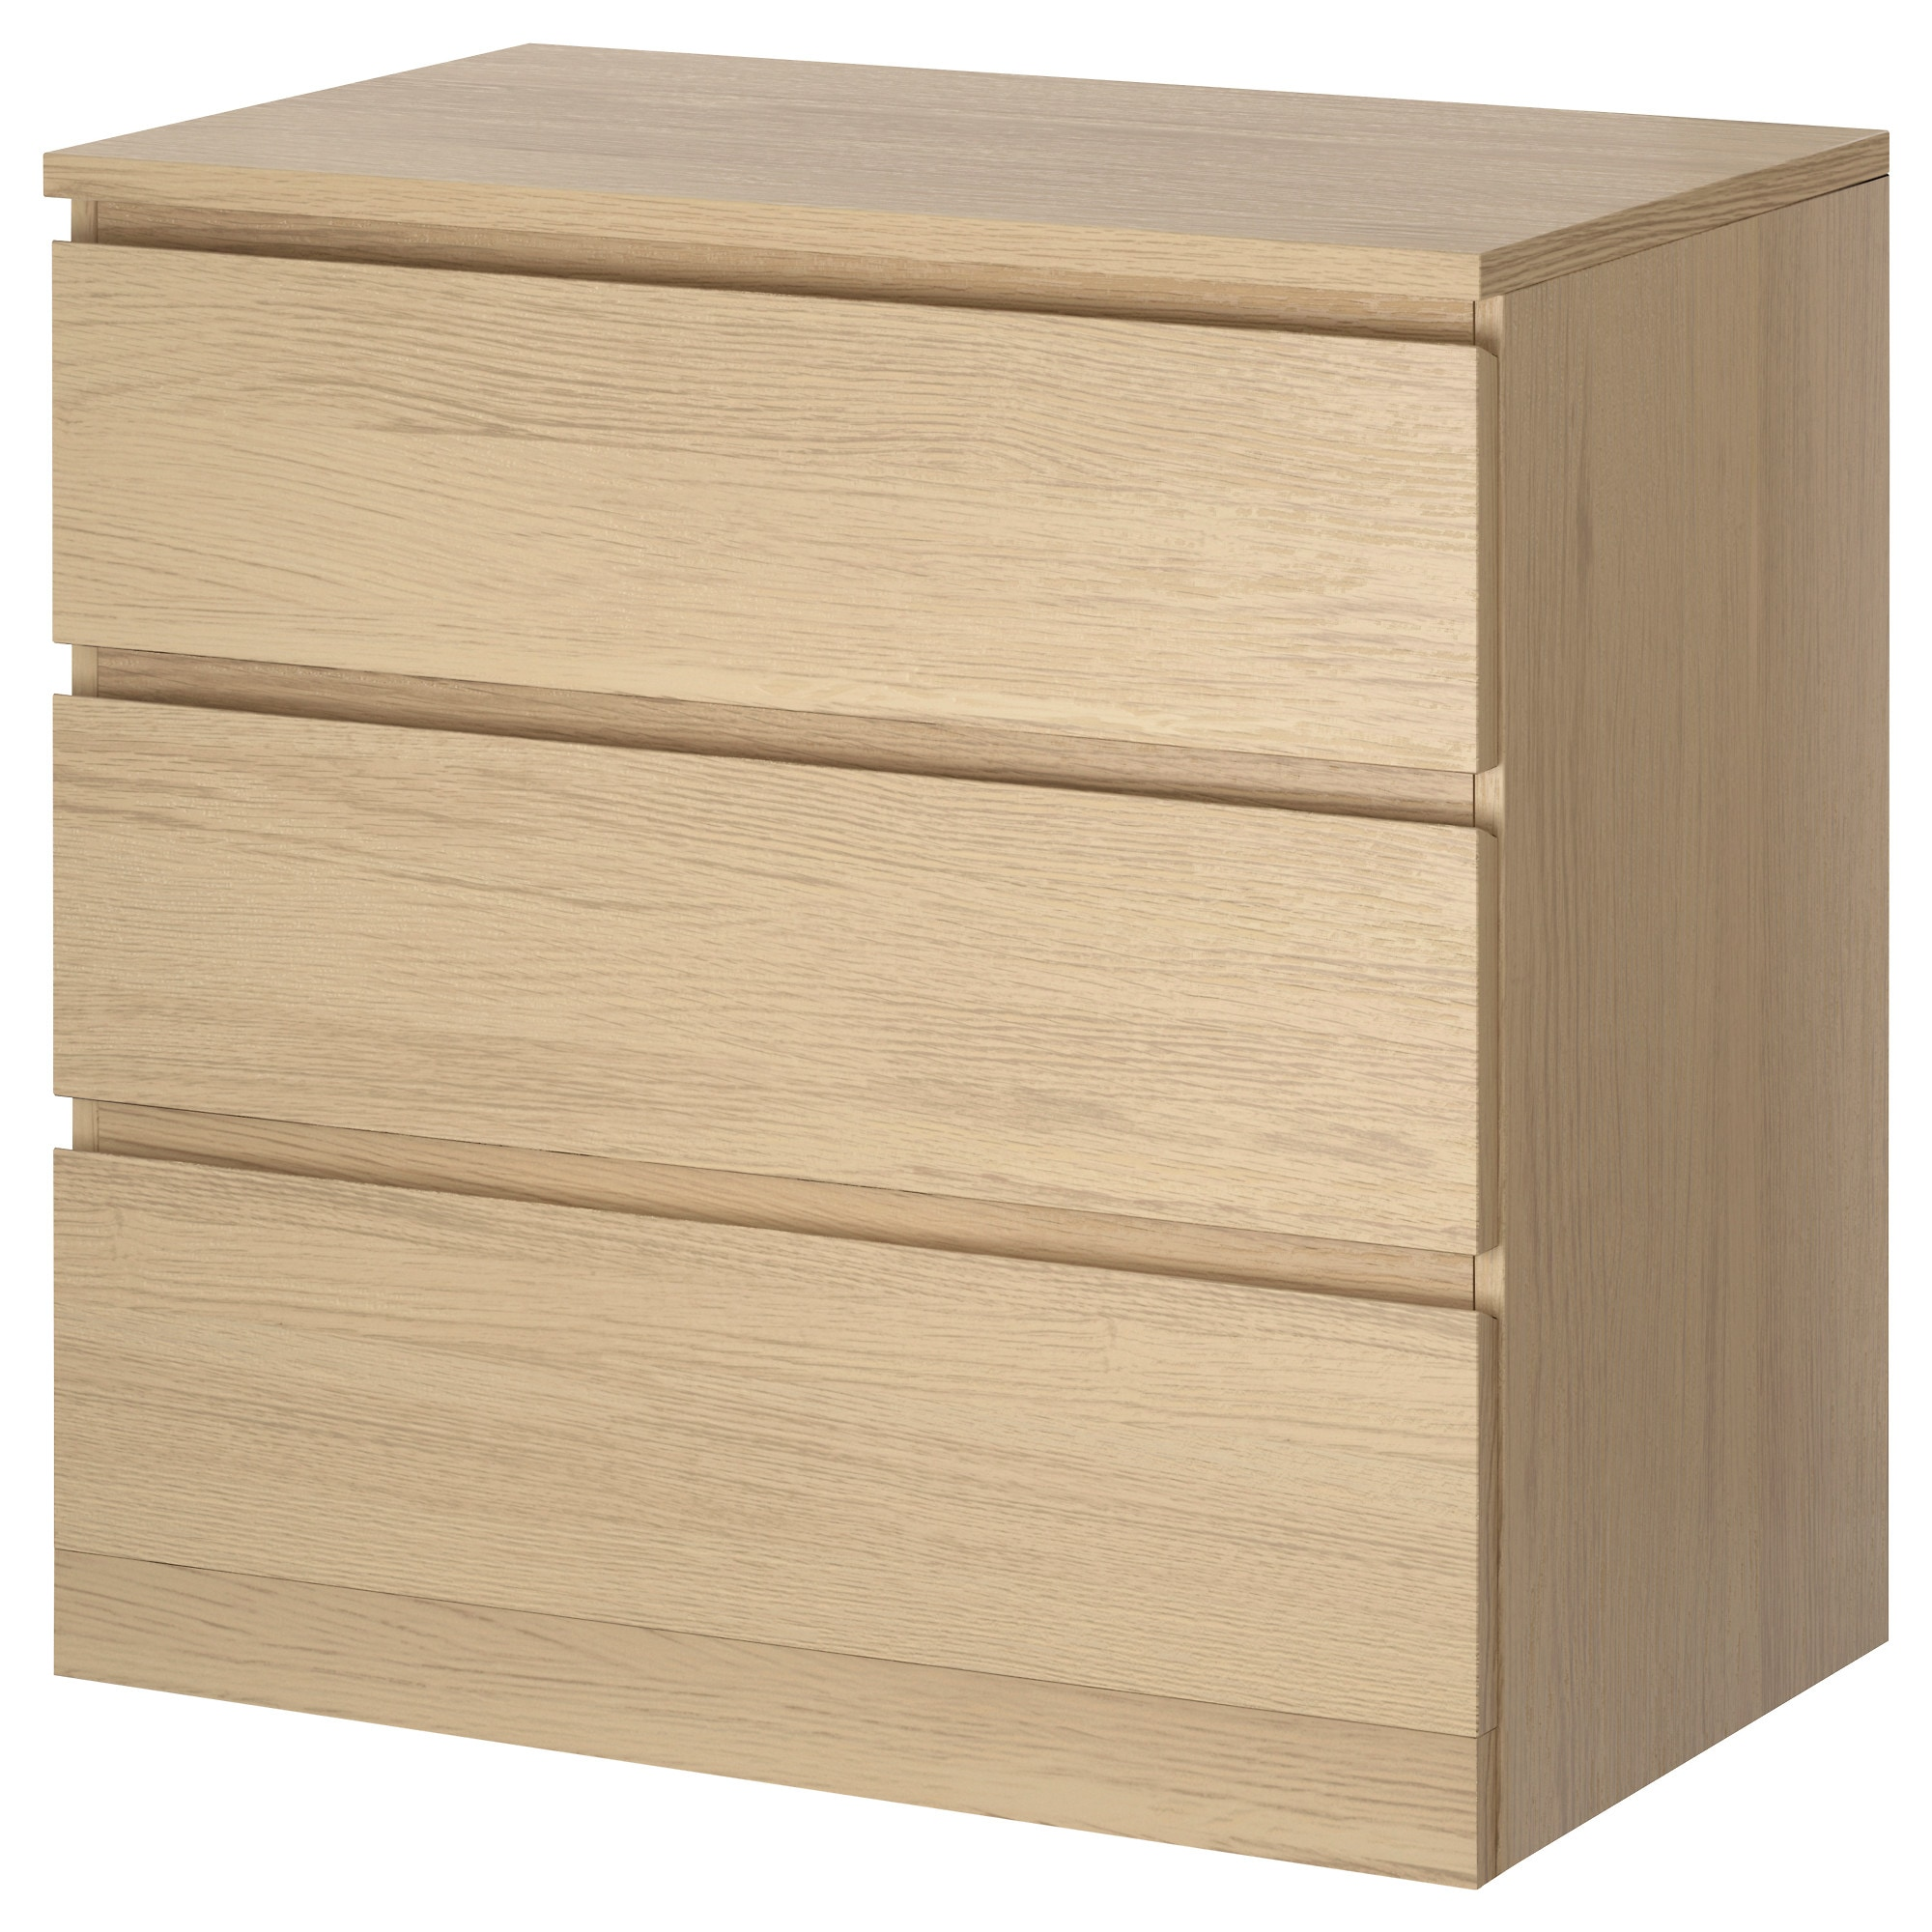 Dressers - Chests of Drawers - IKEA